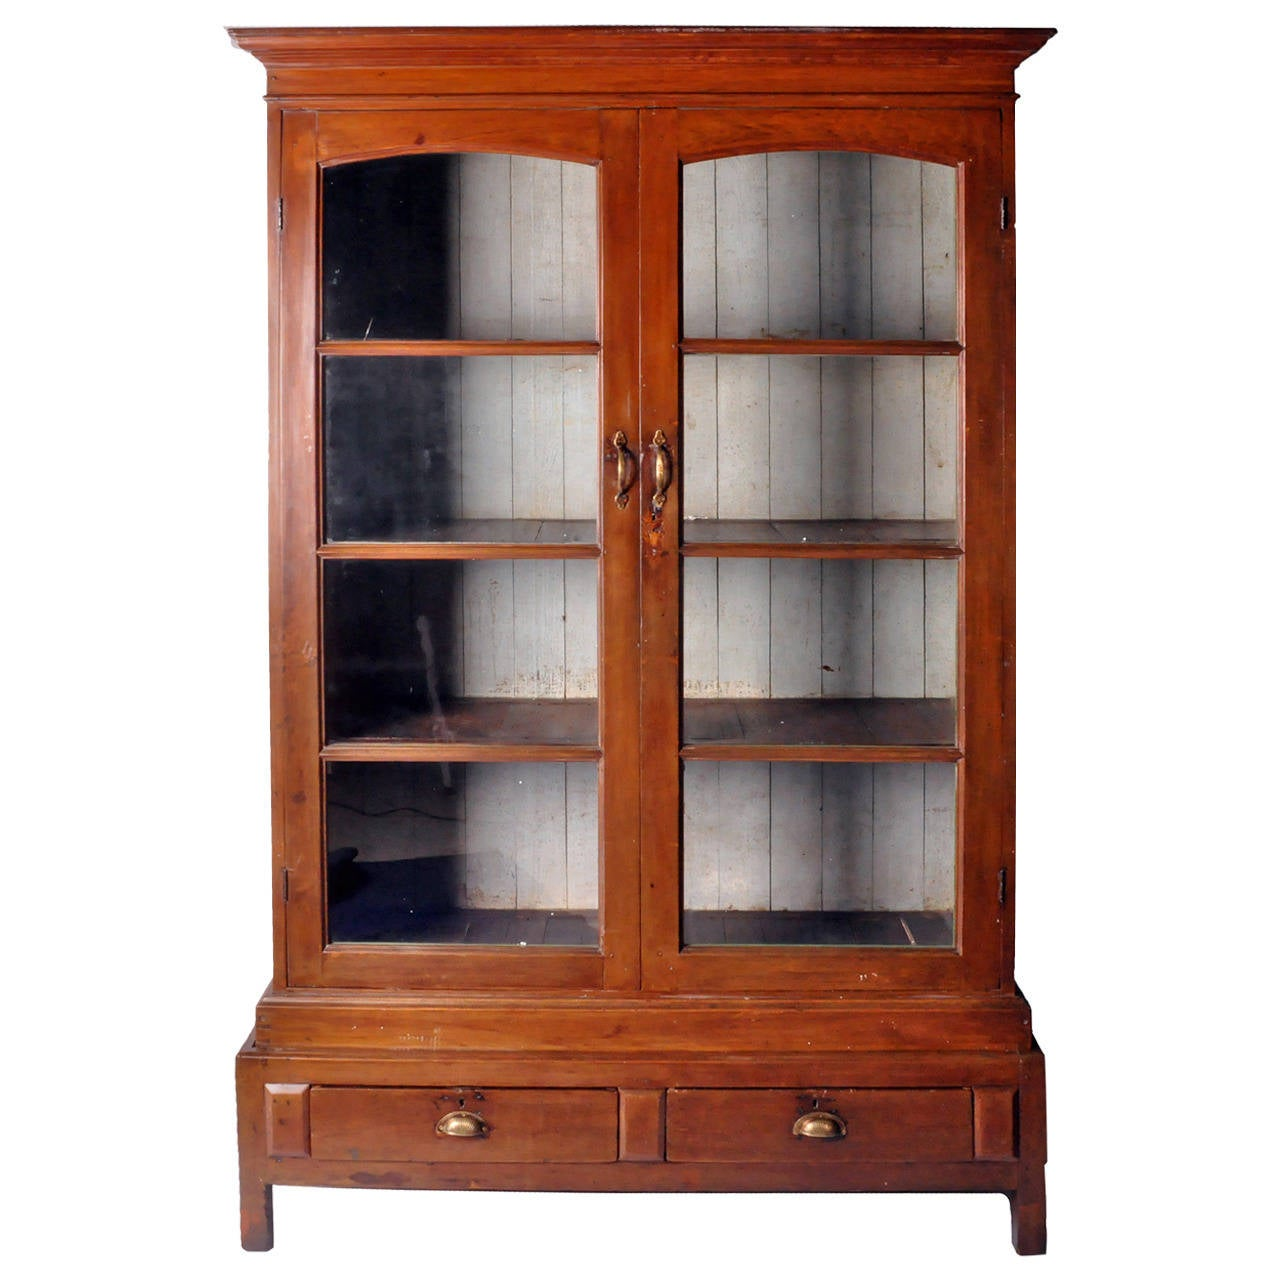 British Colonial Display Cabinet with Two Drawers For Sale at 1stdibs